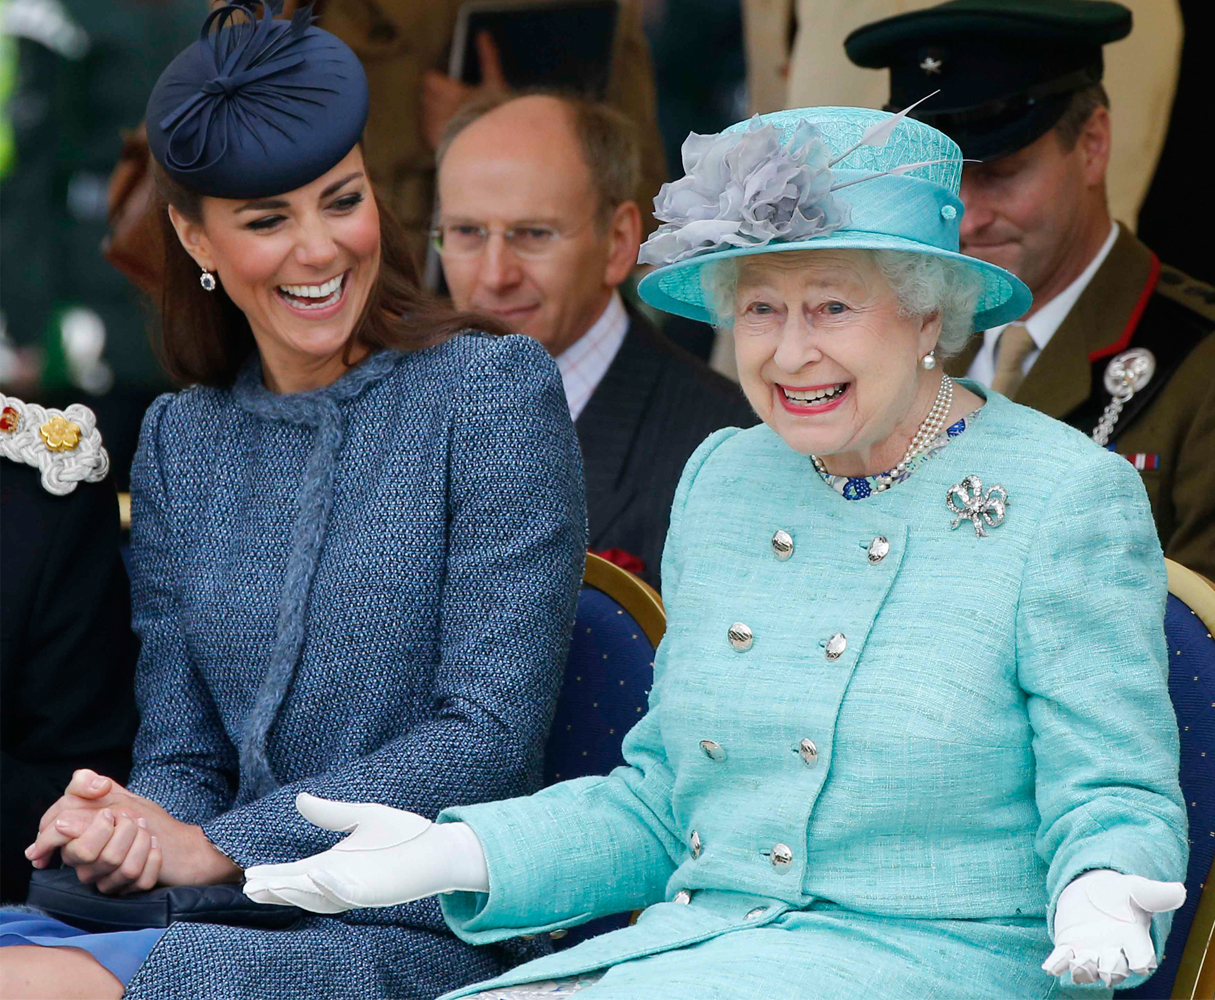 The Queen and Kate Middleton seated side by side